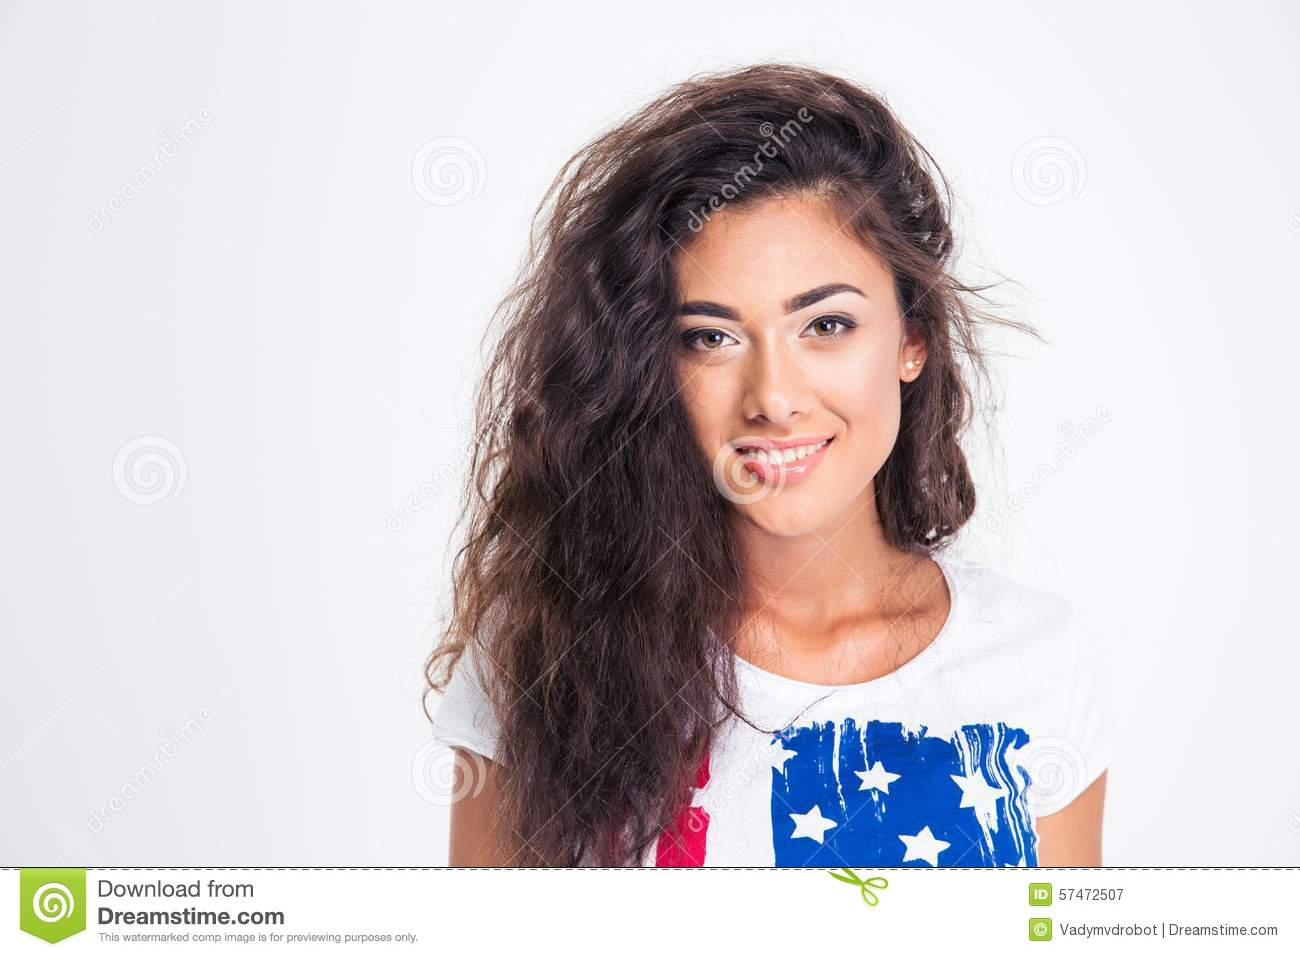 teen-girls-with-curly-hair